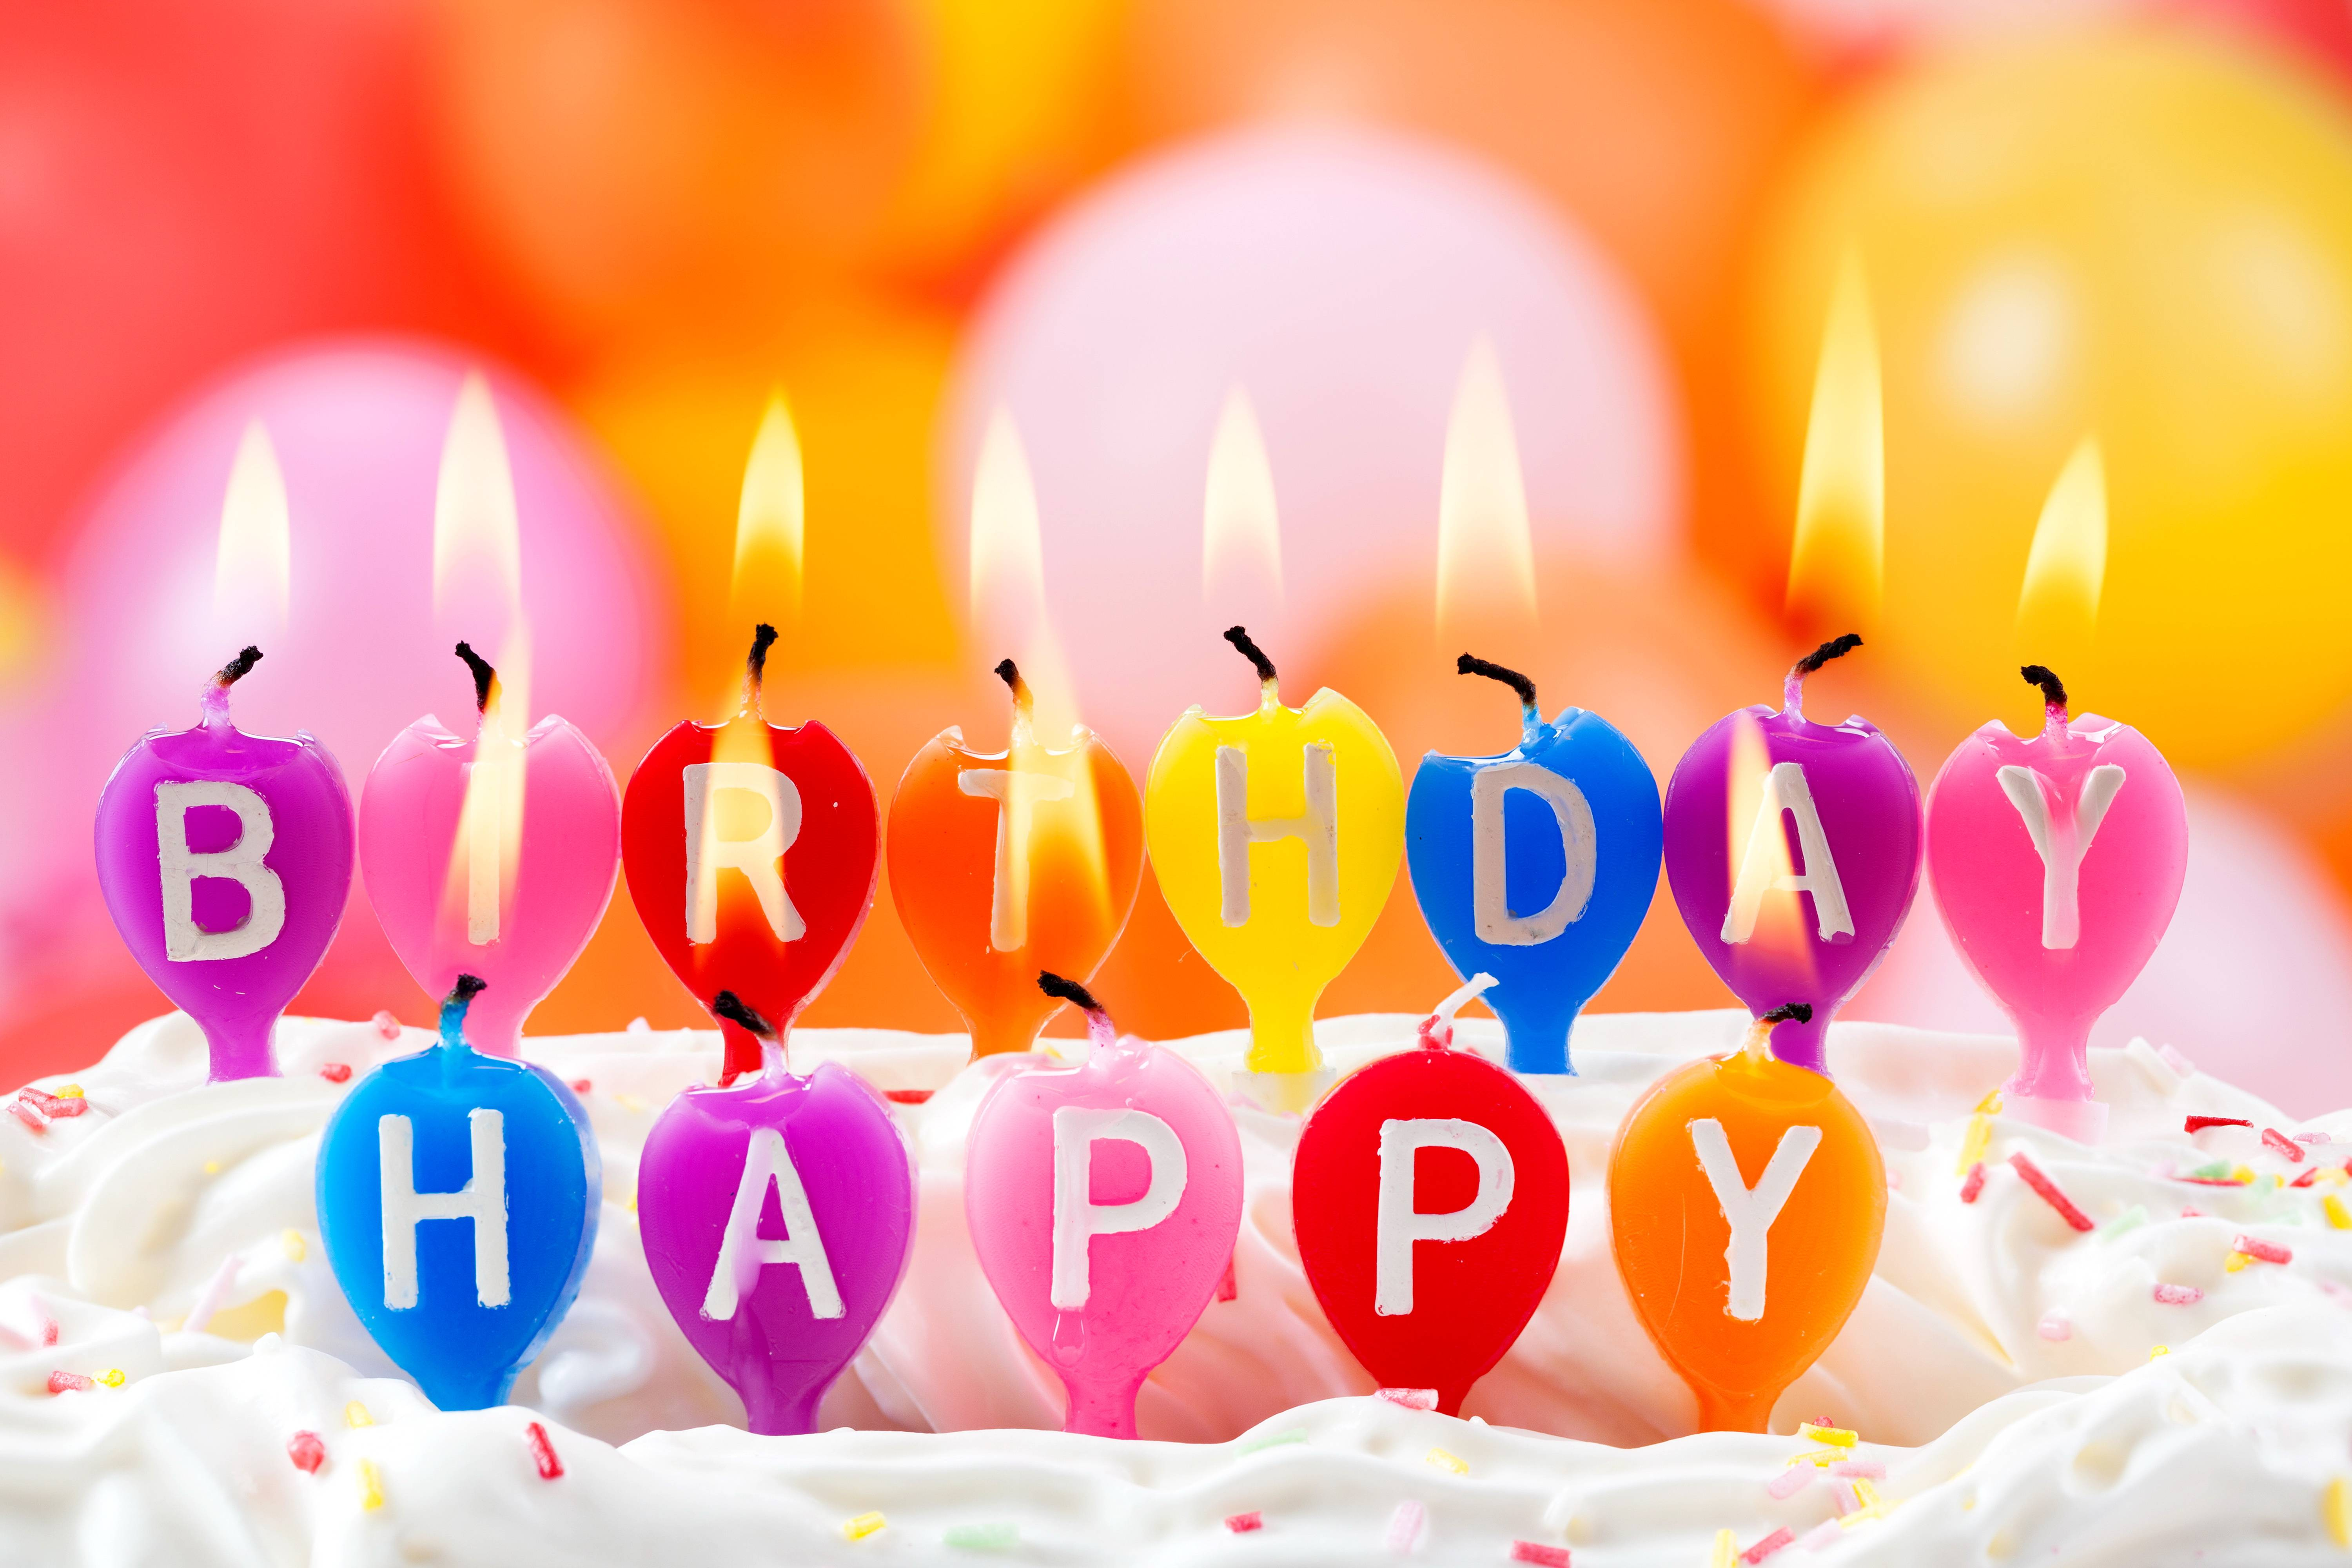 Happy Birthday Hd Backgrounds Wallpapers 34 HD Wallpapers